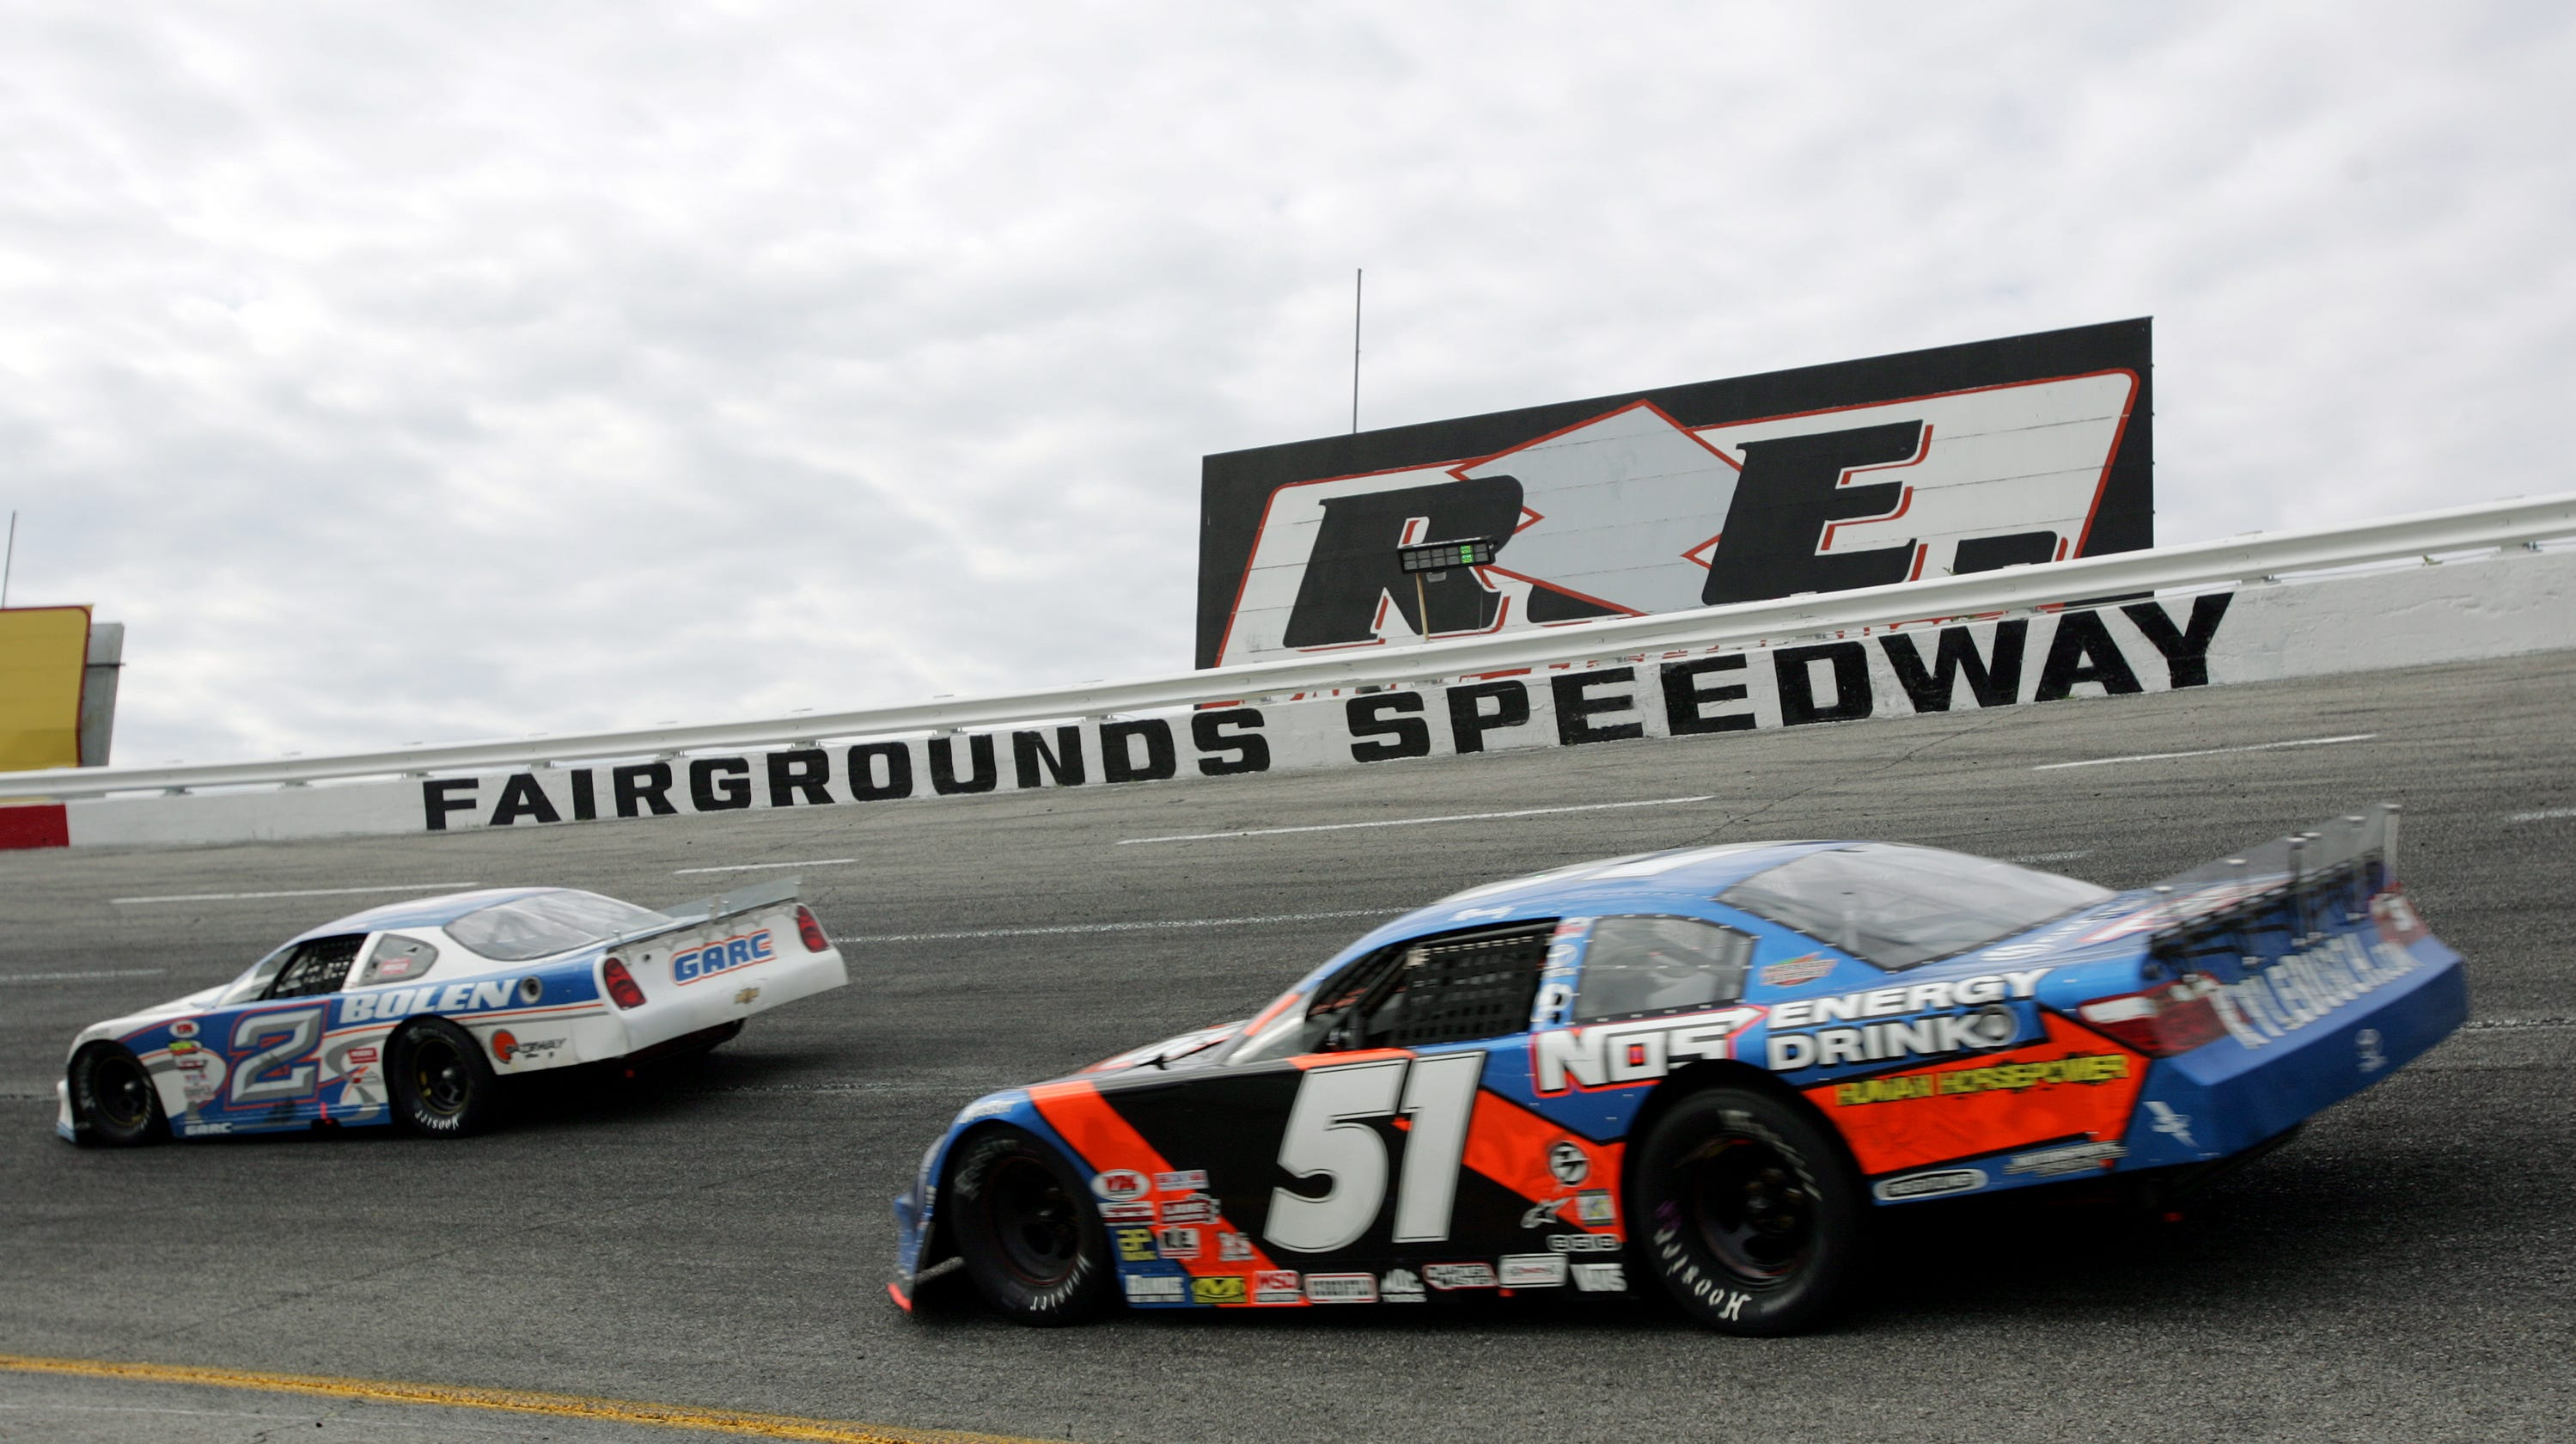 Reports: NASCAR to purchase International Speedway Corporation